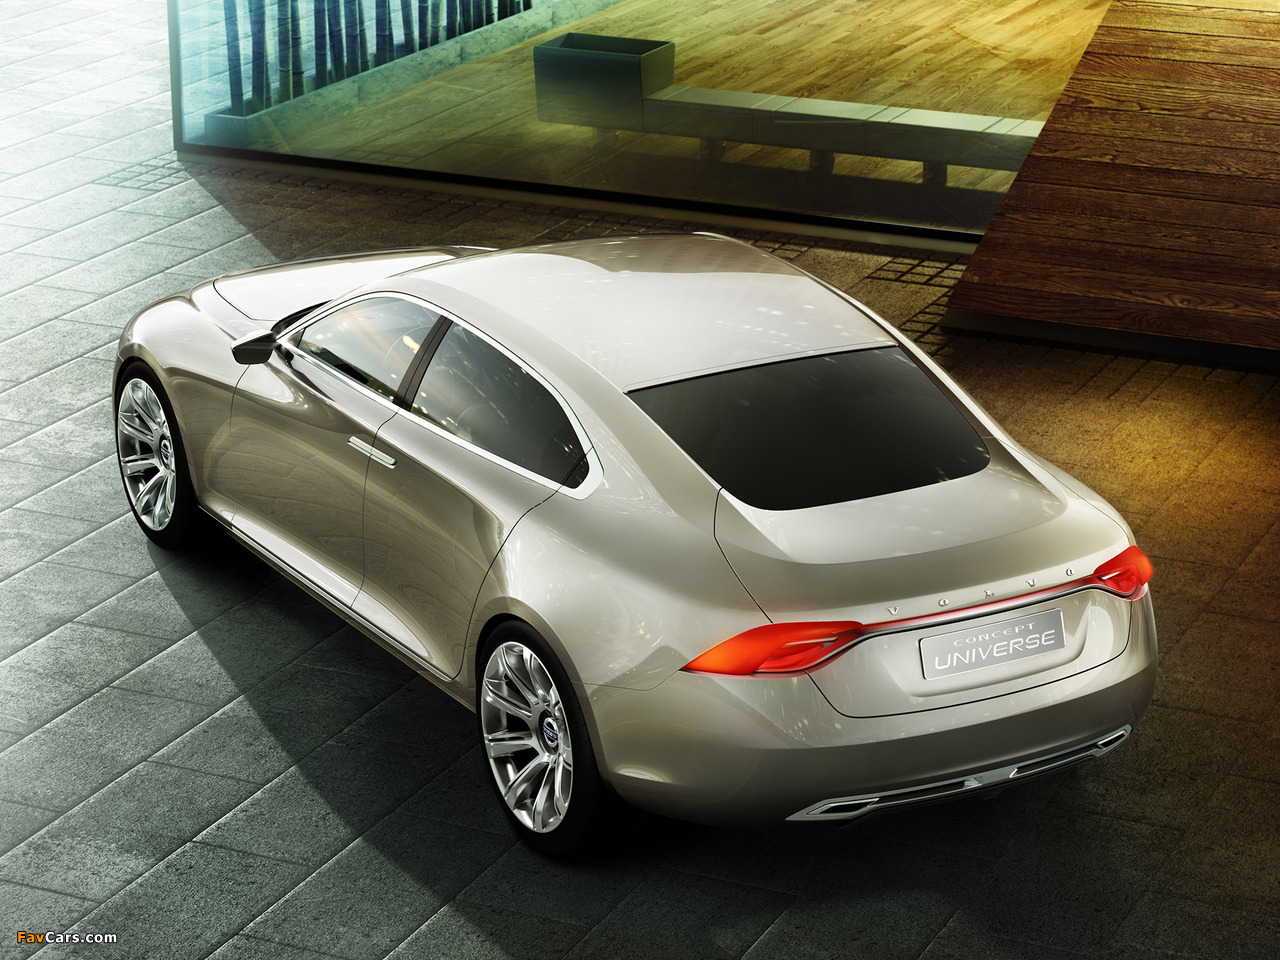 Images of Volvo Universe Concept 2011 (1280 x 960)